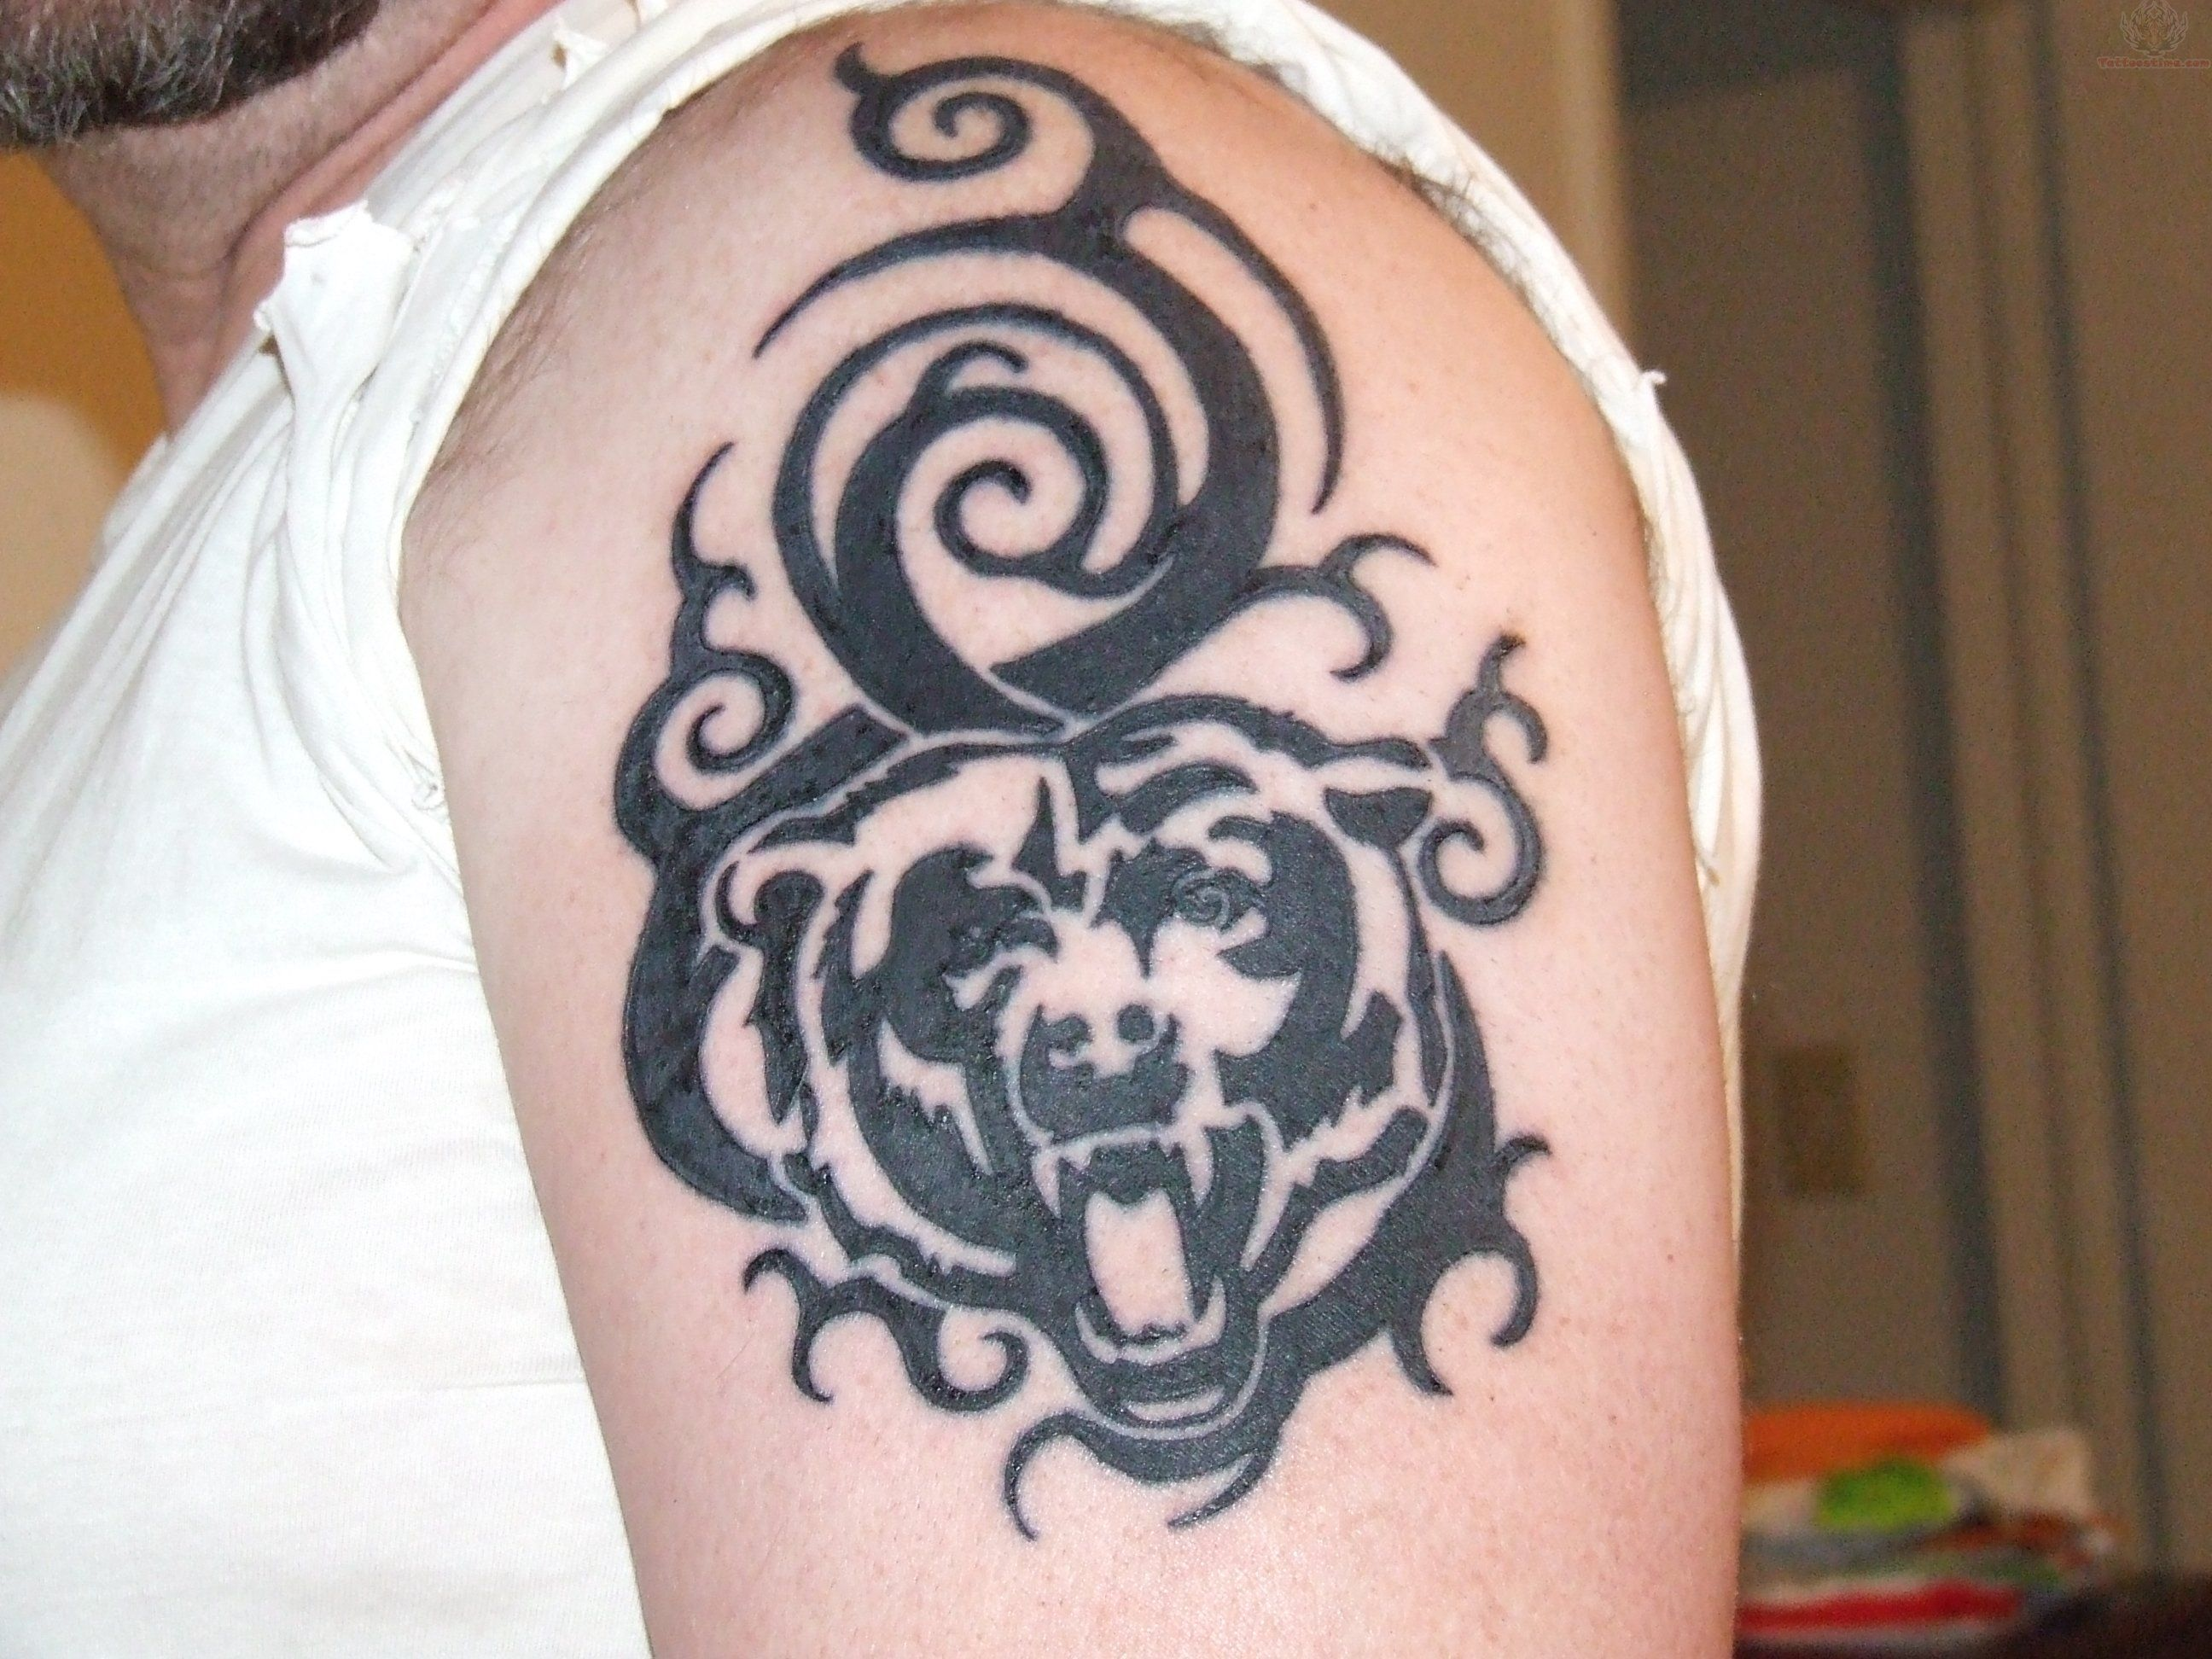 Tribal-Tattoos eff6aaed53cd24bf927f54a25bfd78c3